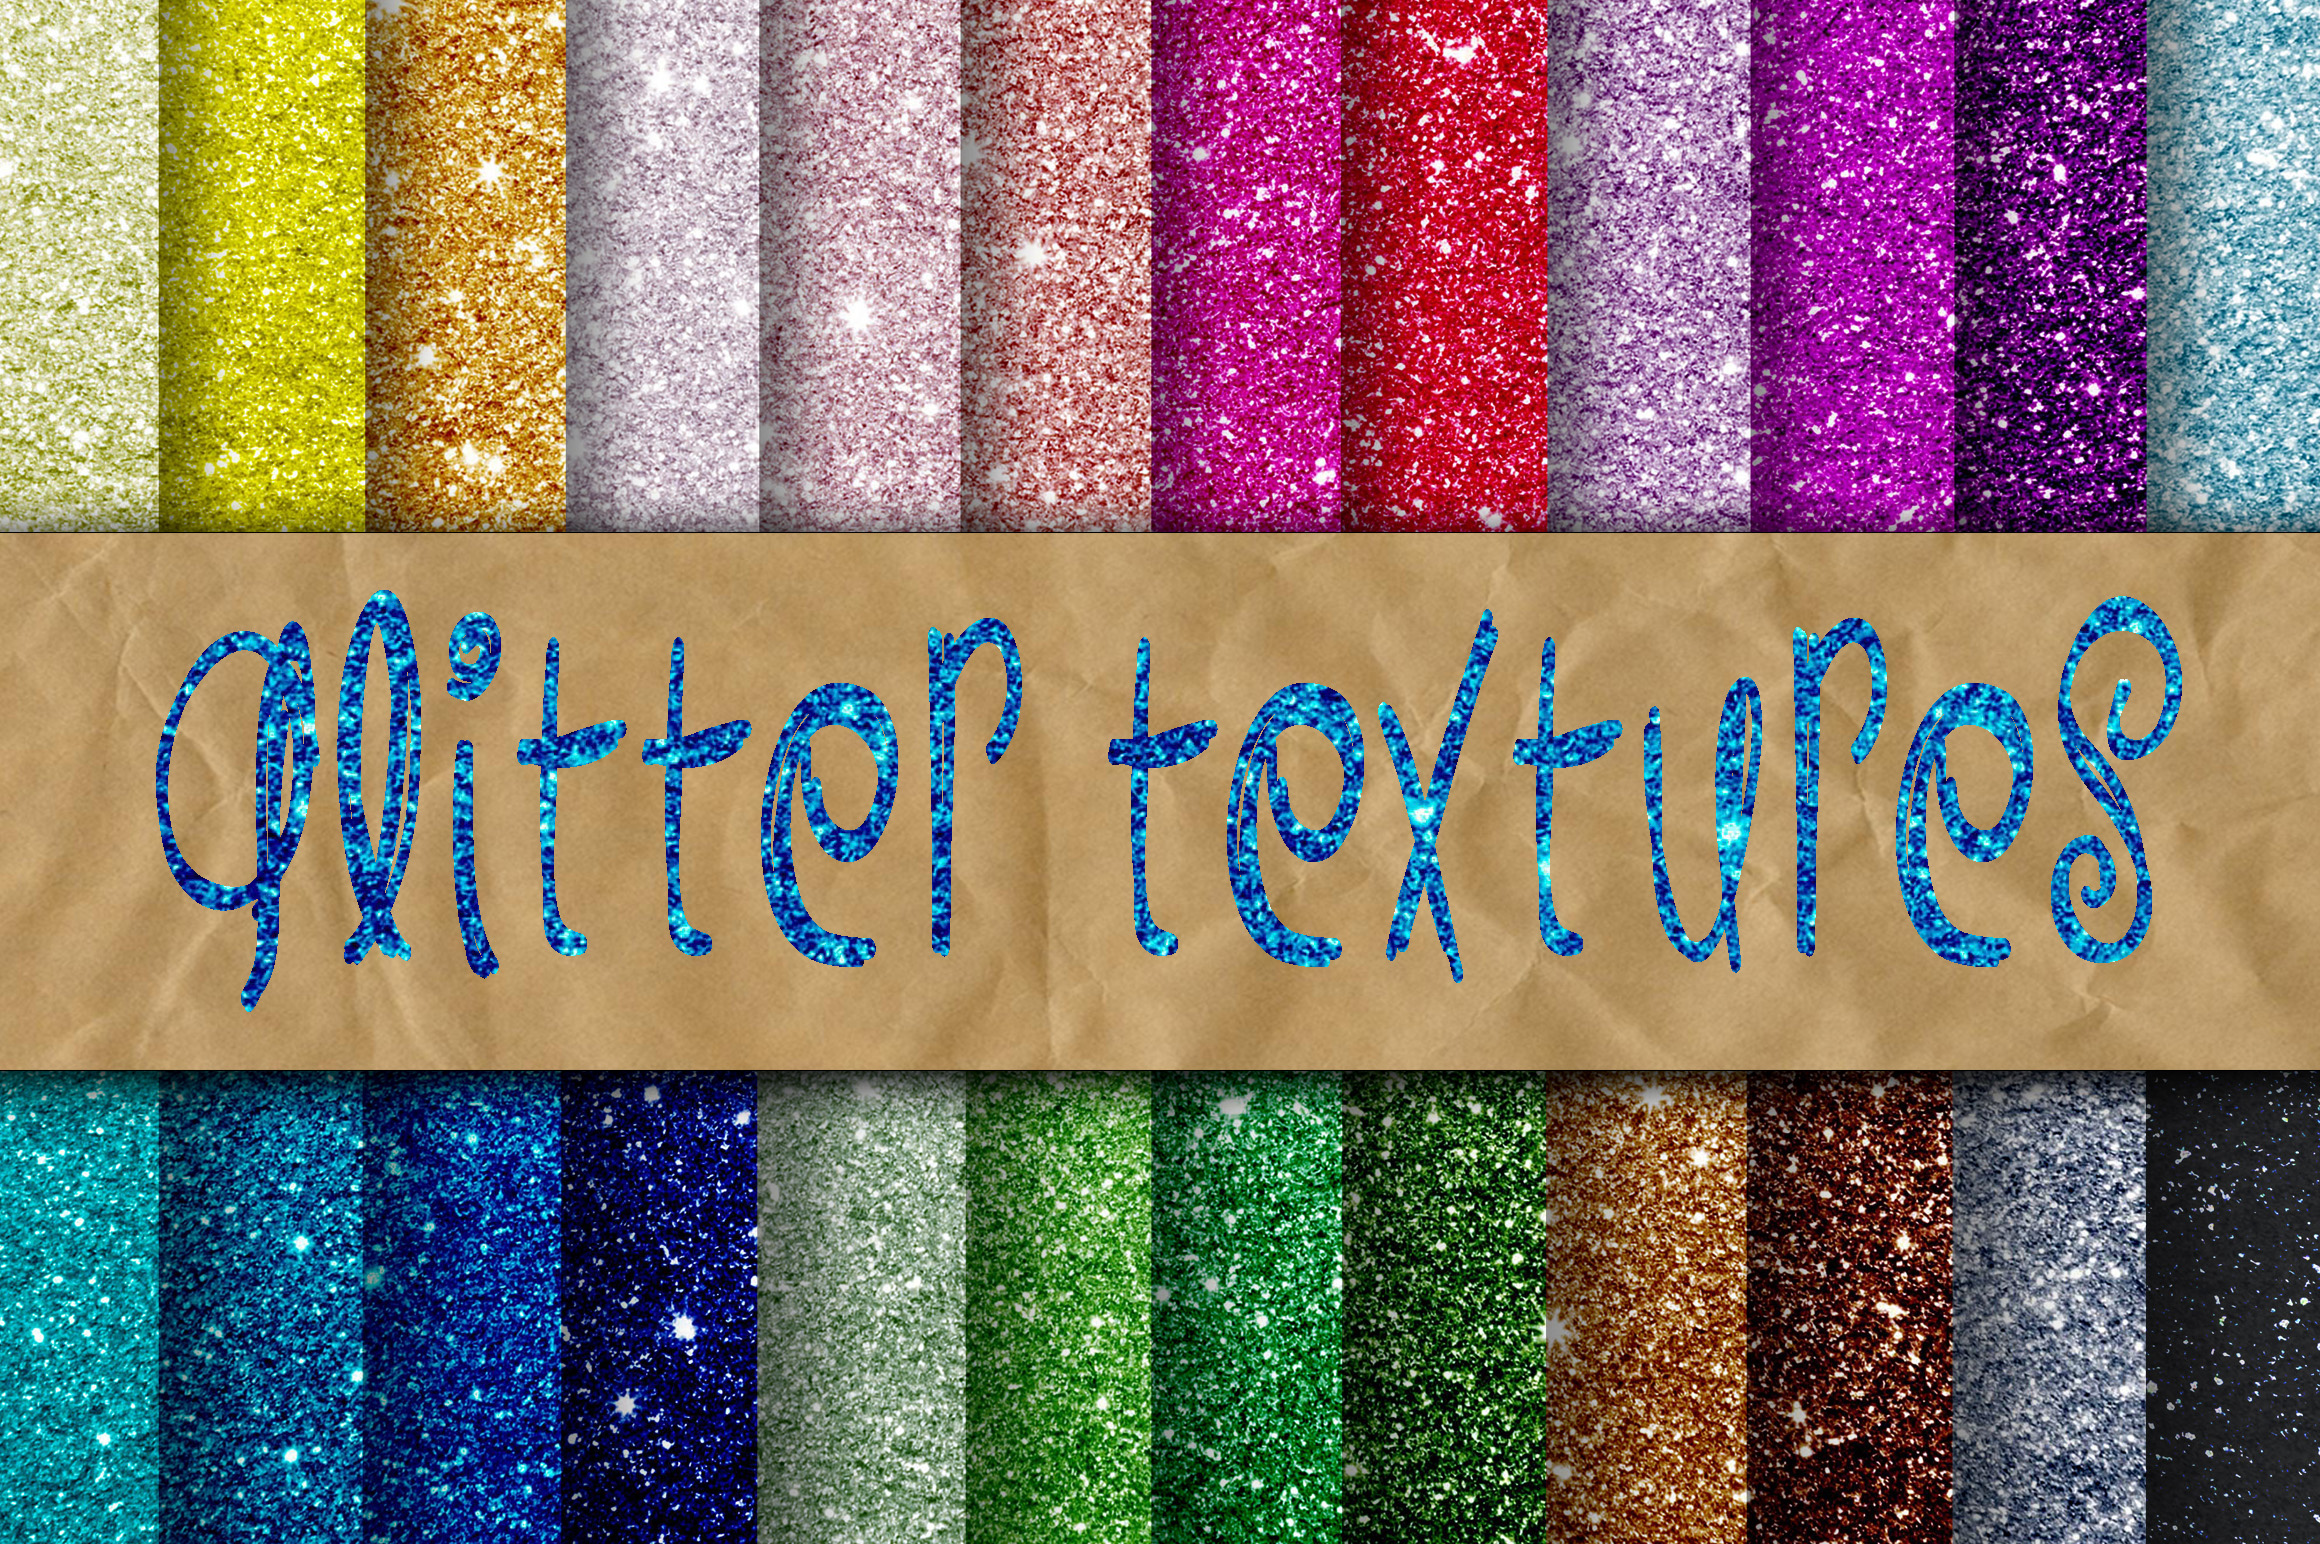 Glitter Digital Paper Grafik Hintegründe von oldmarketdesigns